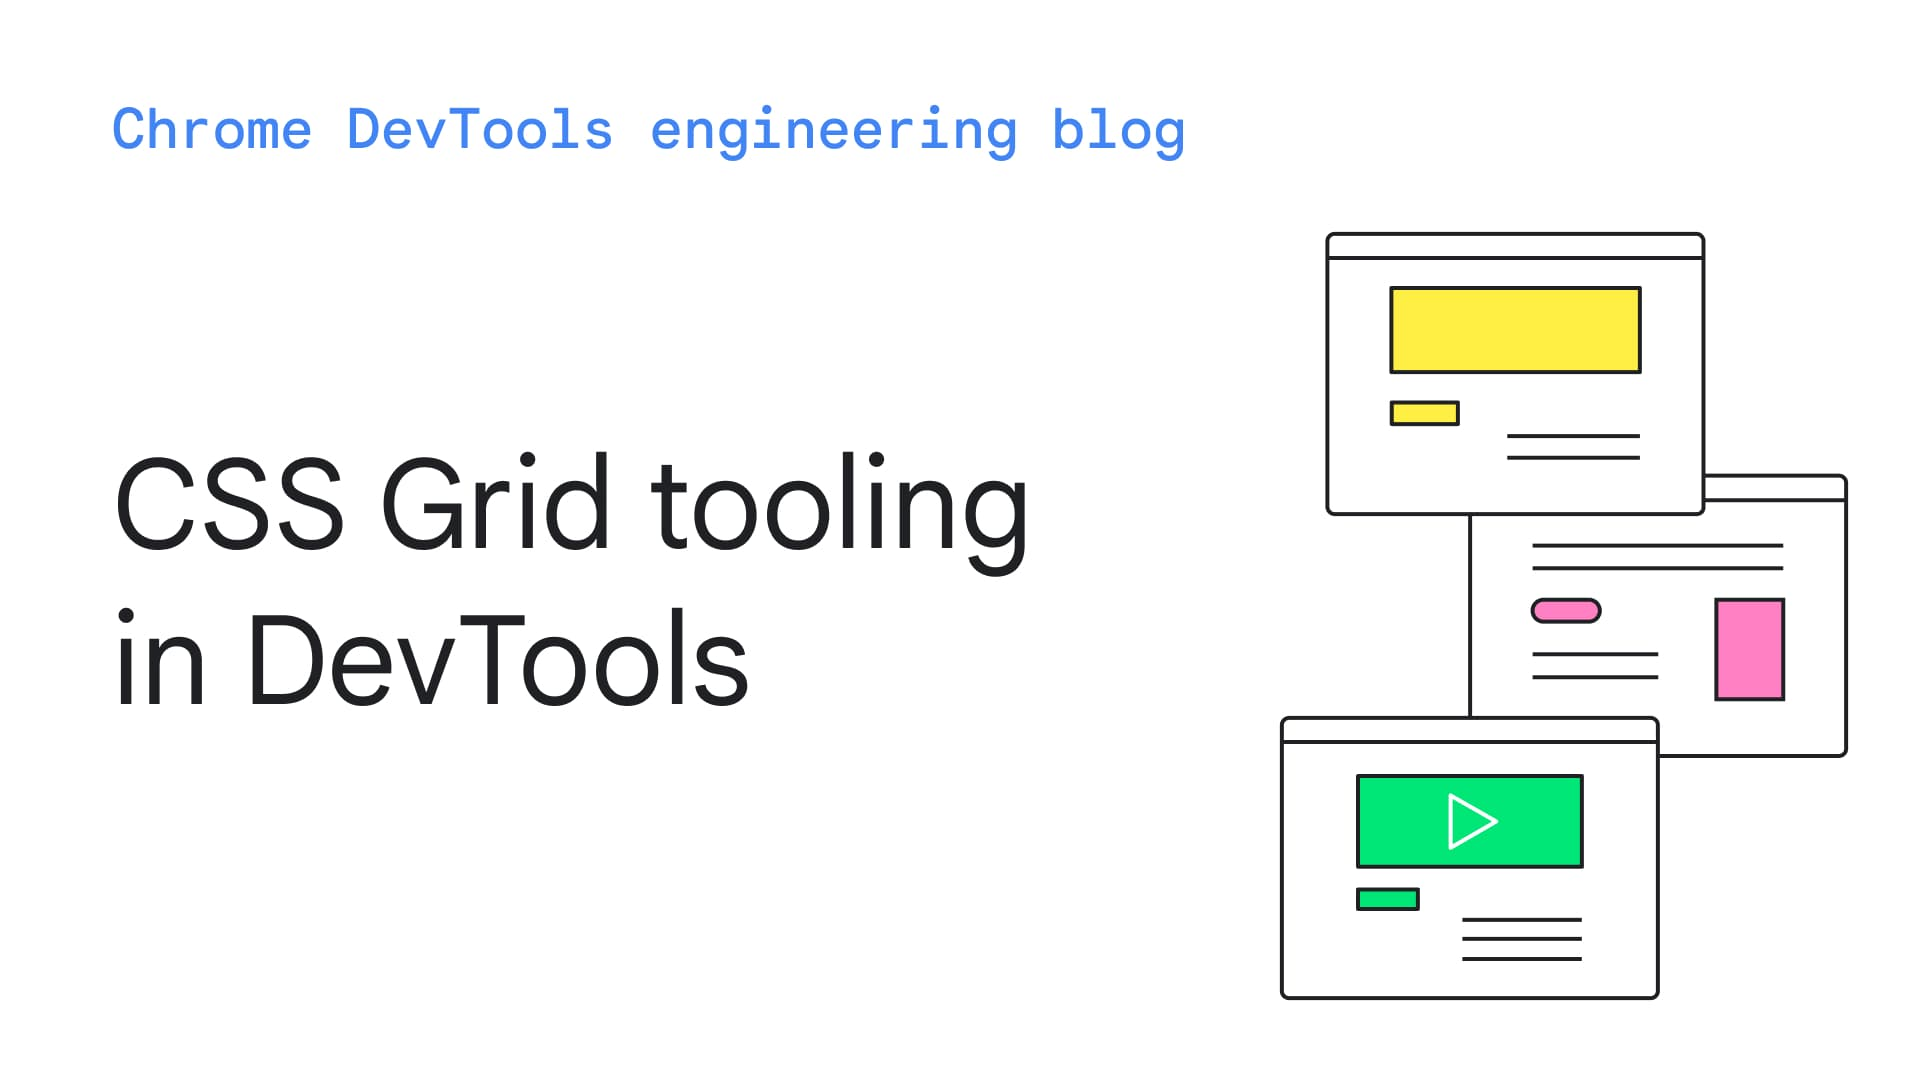 CSS Grid tooling in DevTools